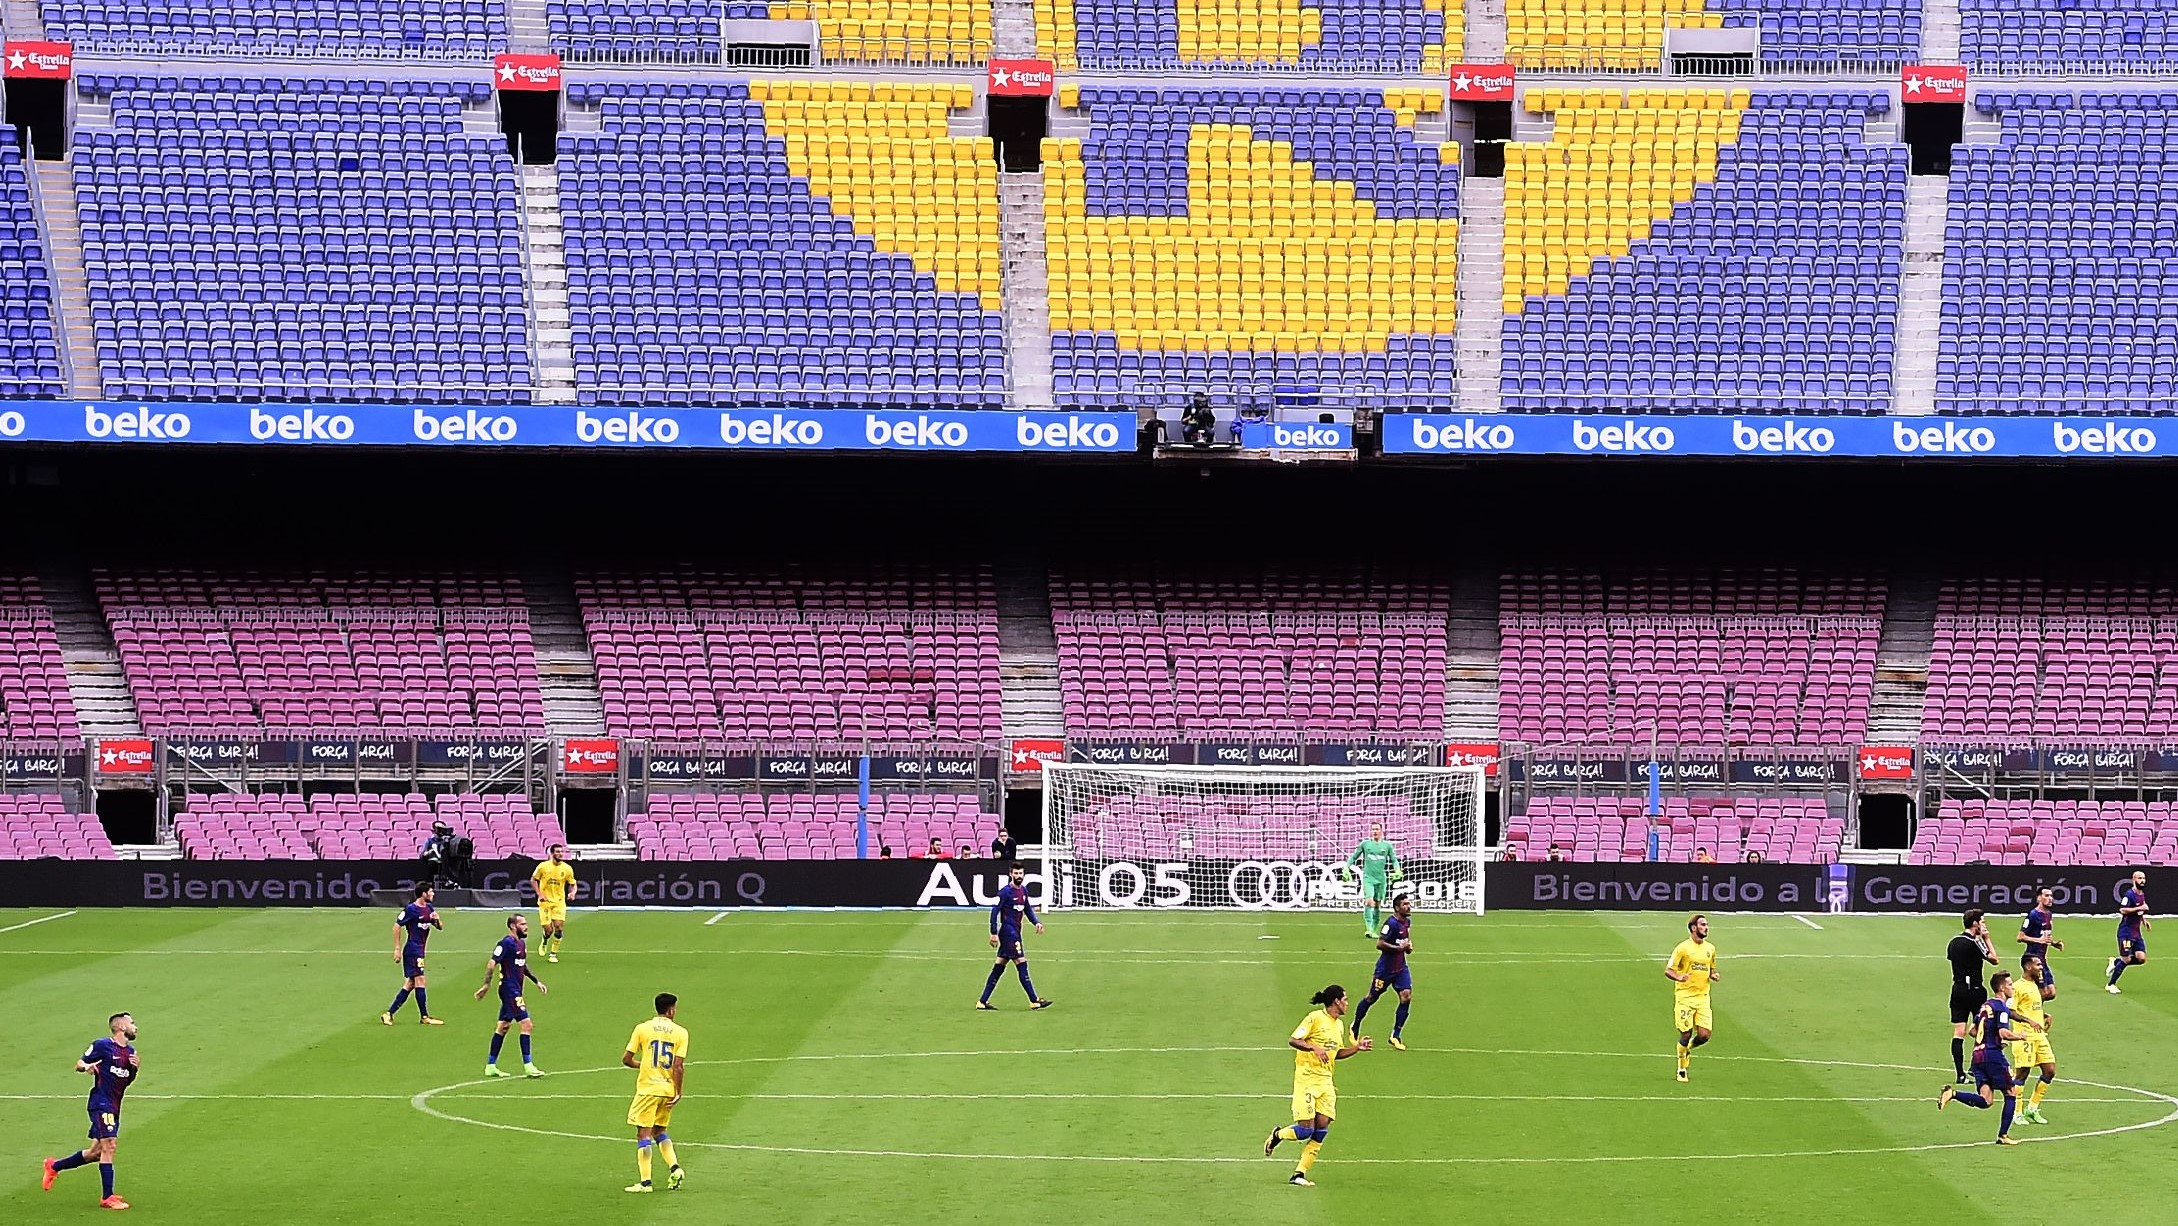 https://images.performgroup.com/di/library/GOAL/ae/30/camp-nou-barcelona-las-palmas-laliga-01102017_1m37dyvrf1kci1ddxxe7us429r.jpg